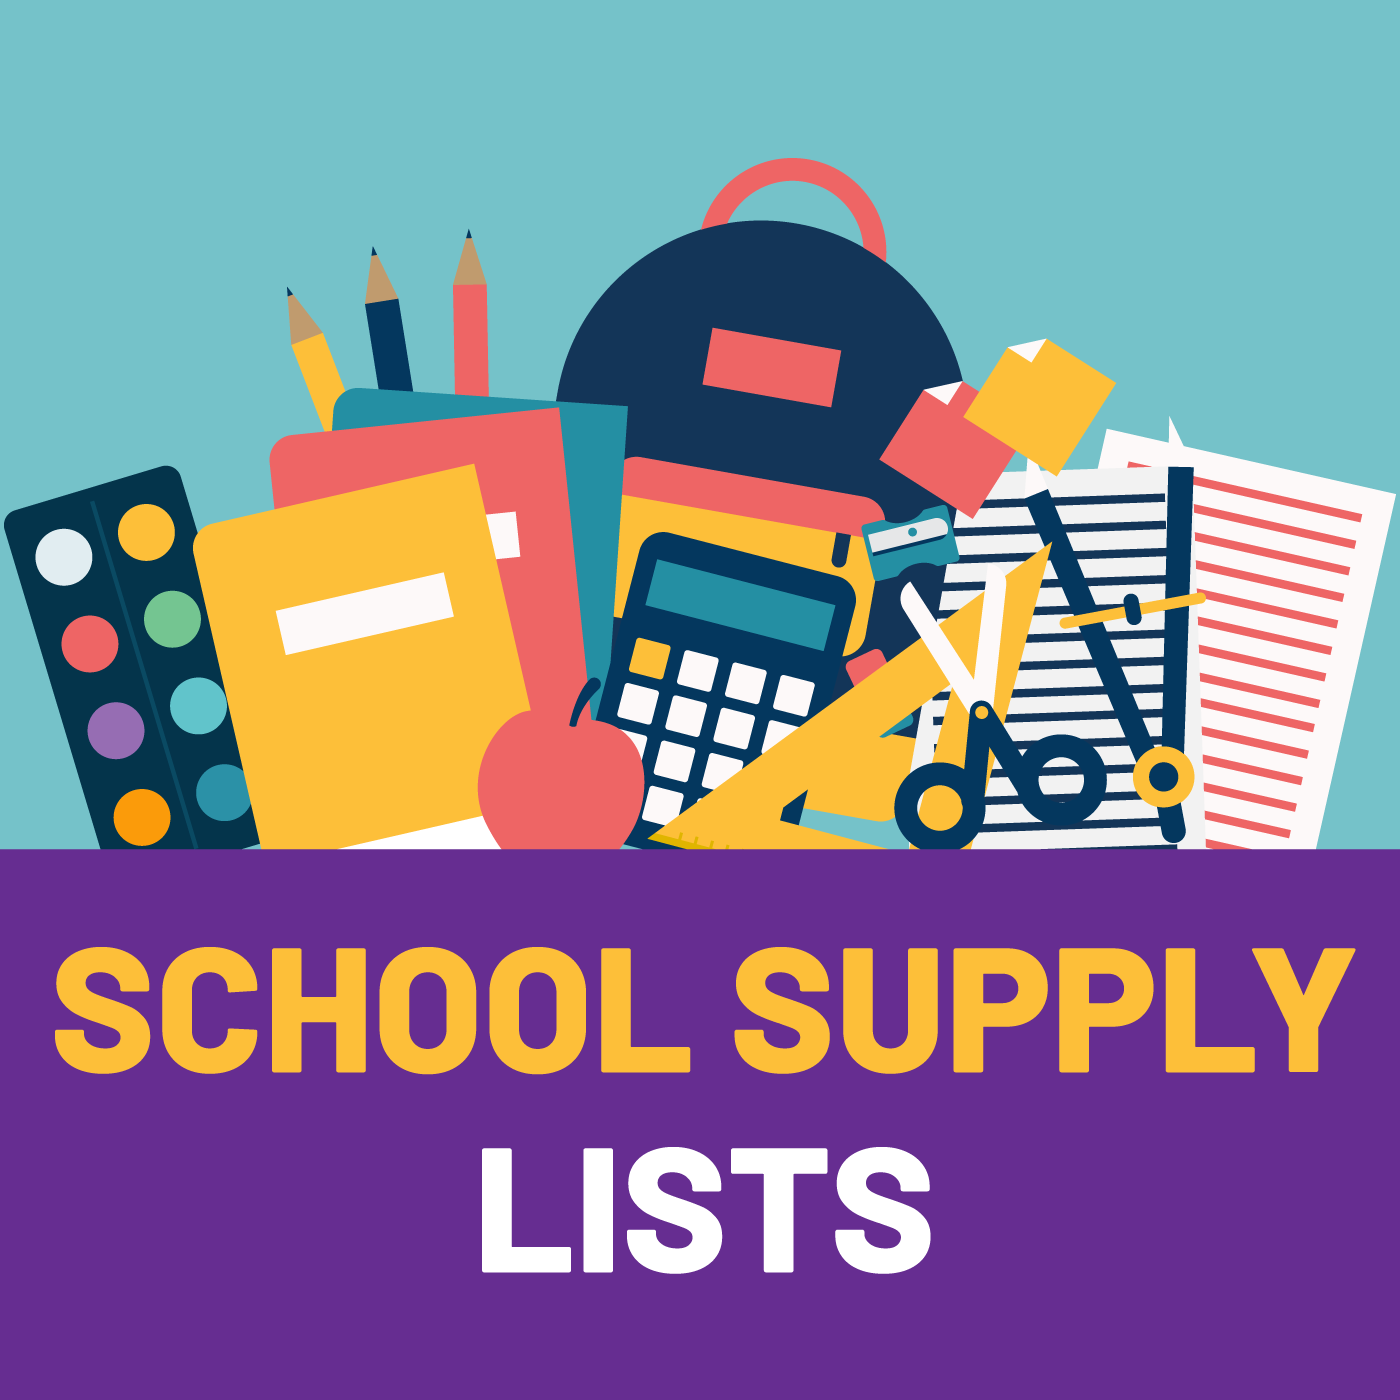 School Supply Lists Ready for 2019 - 2020